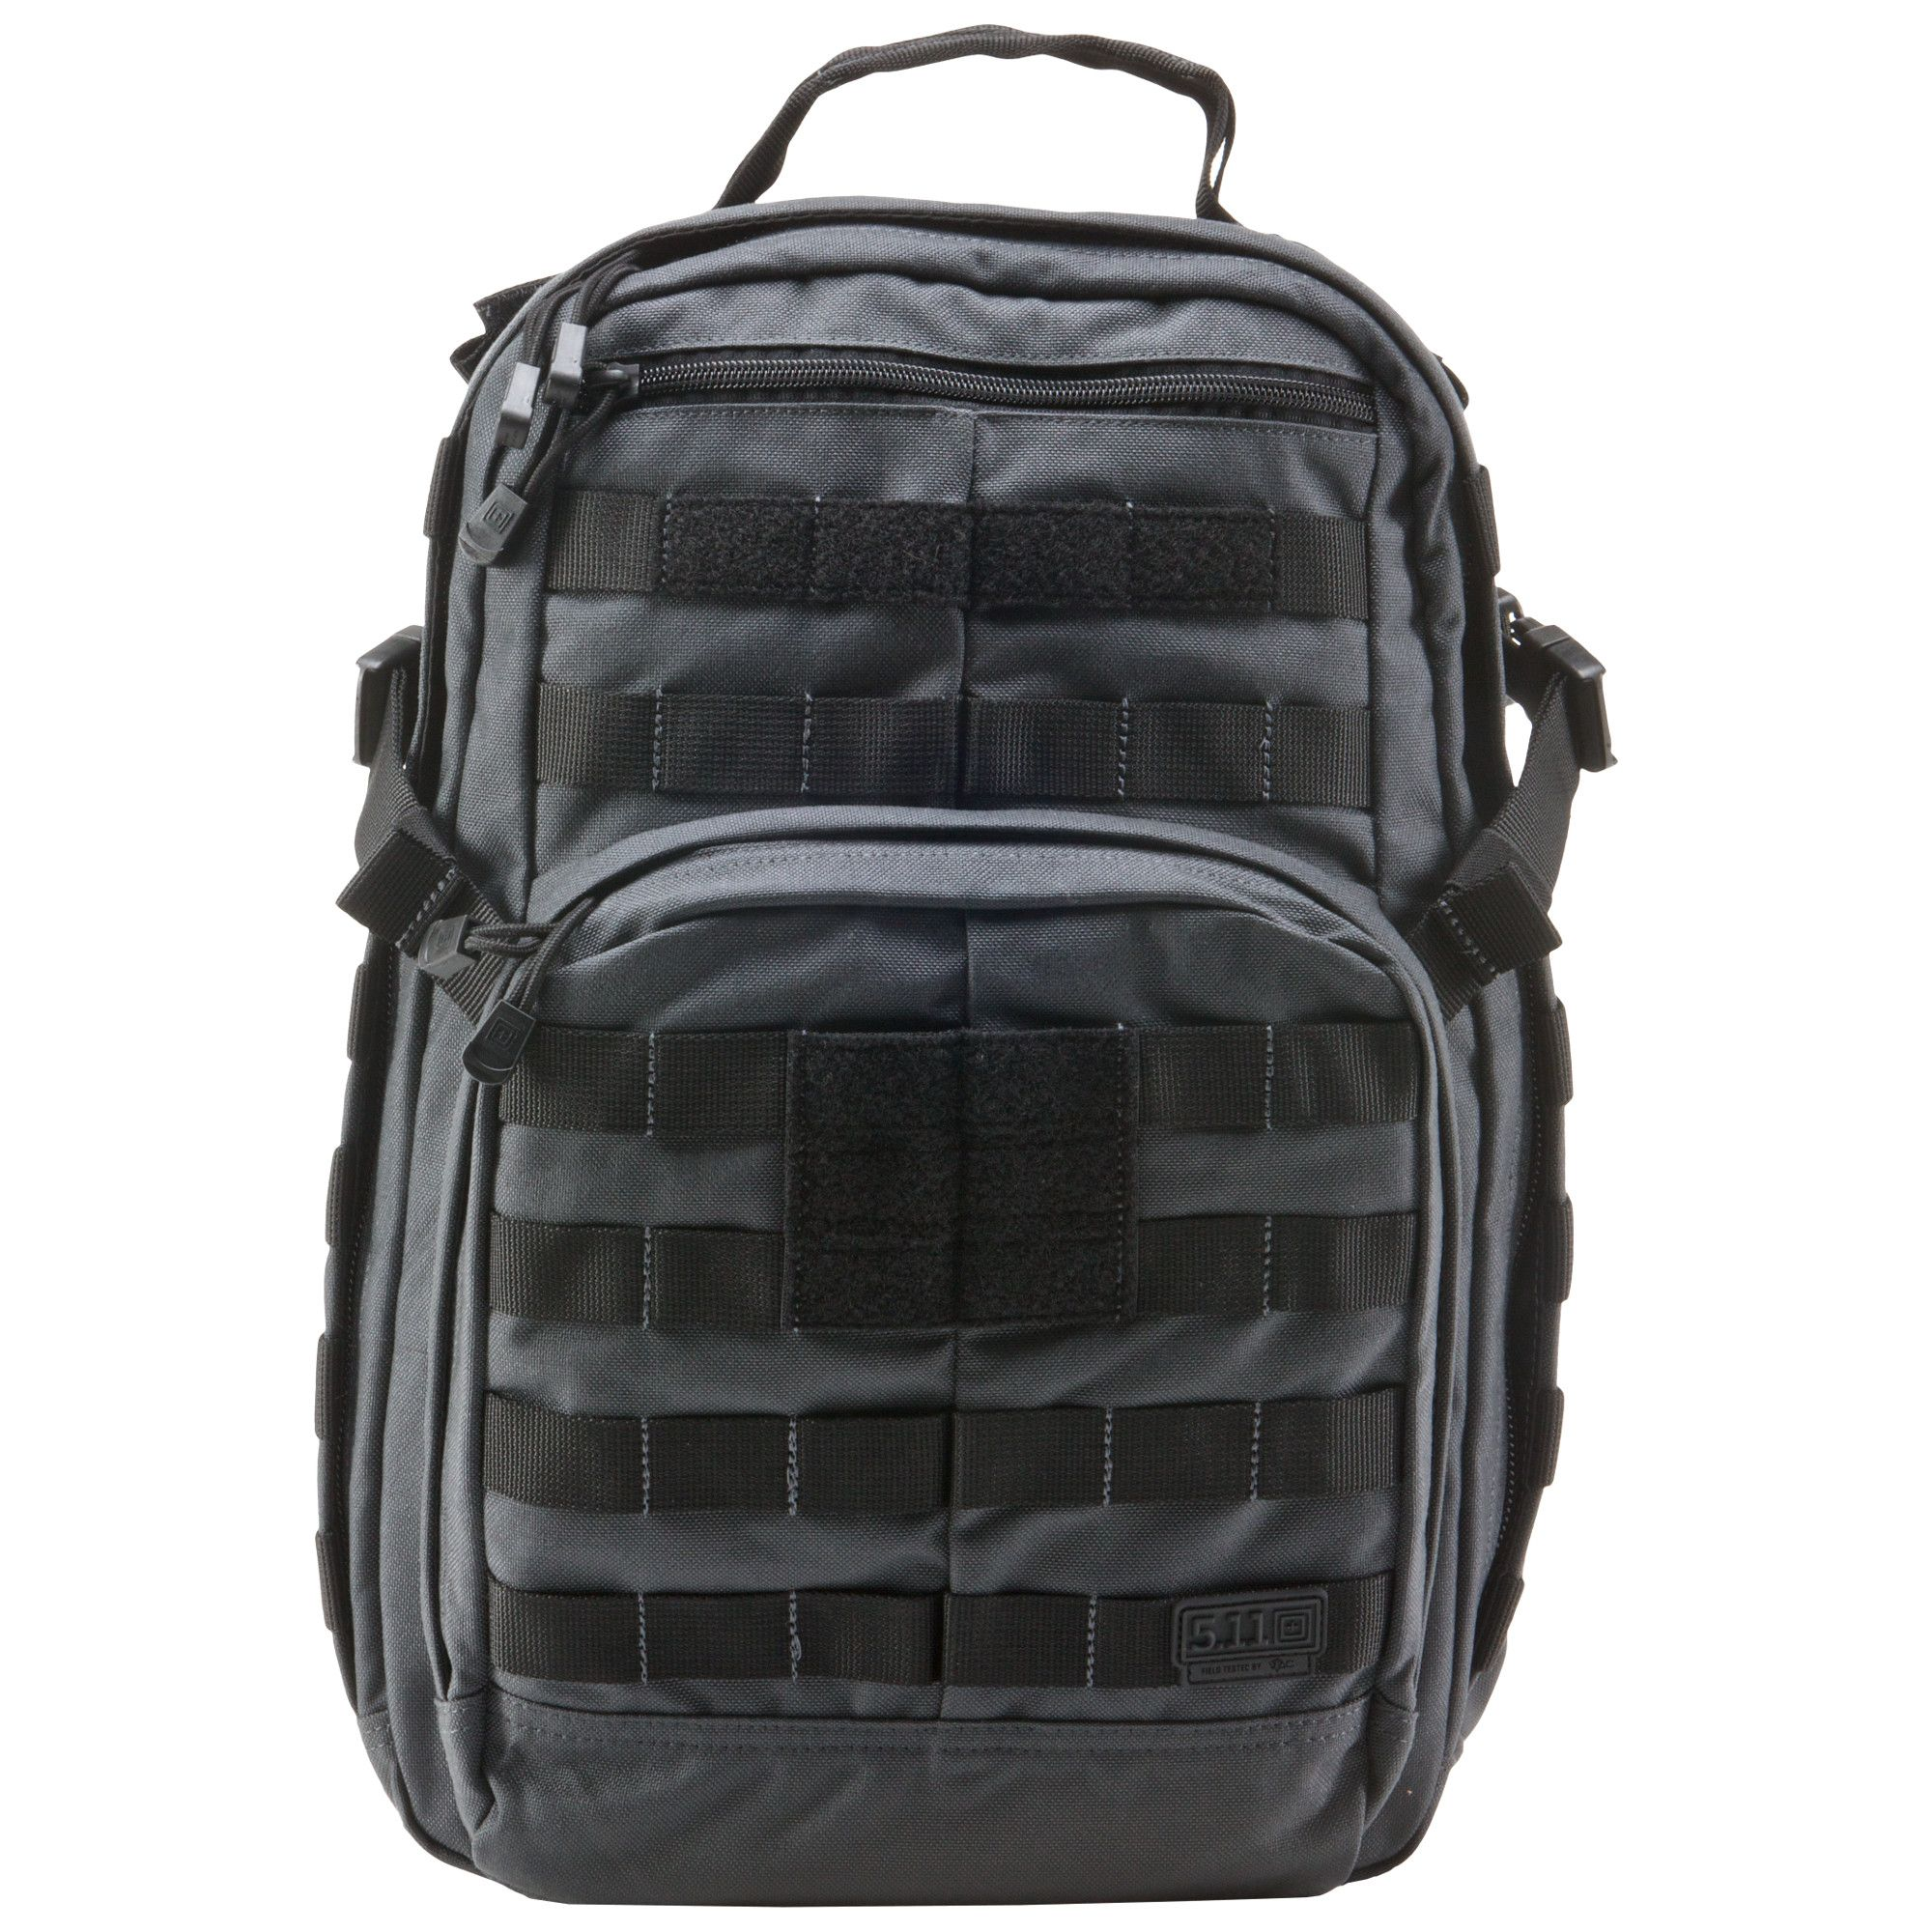 Daypack Rush12 from 5.11 order online now!  725d0b24a6e9e